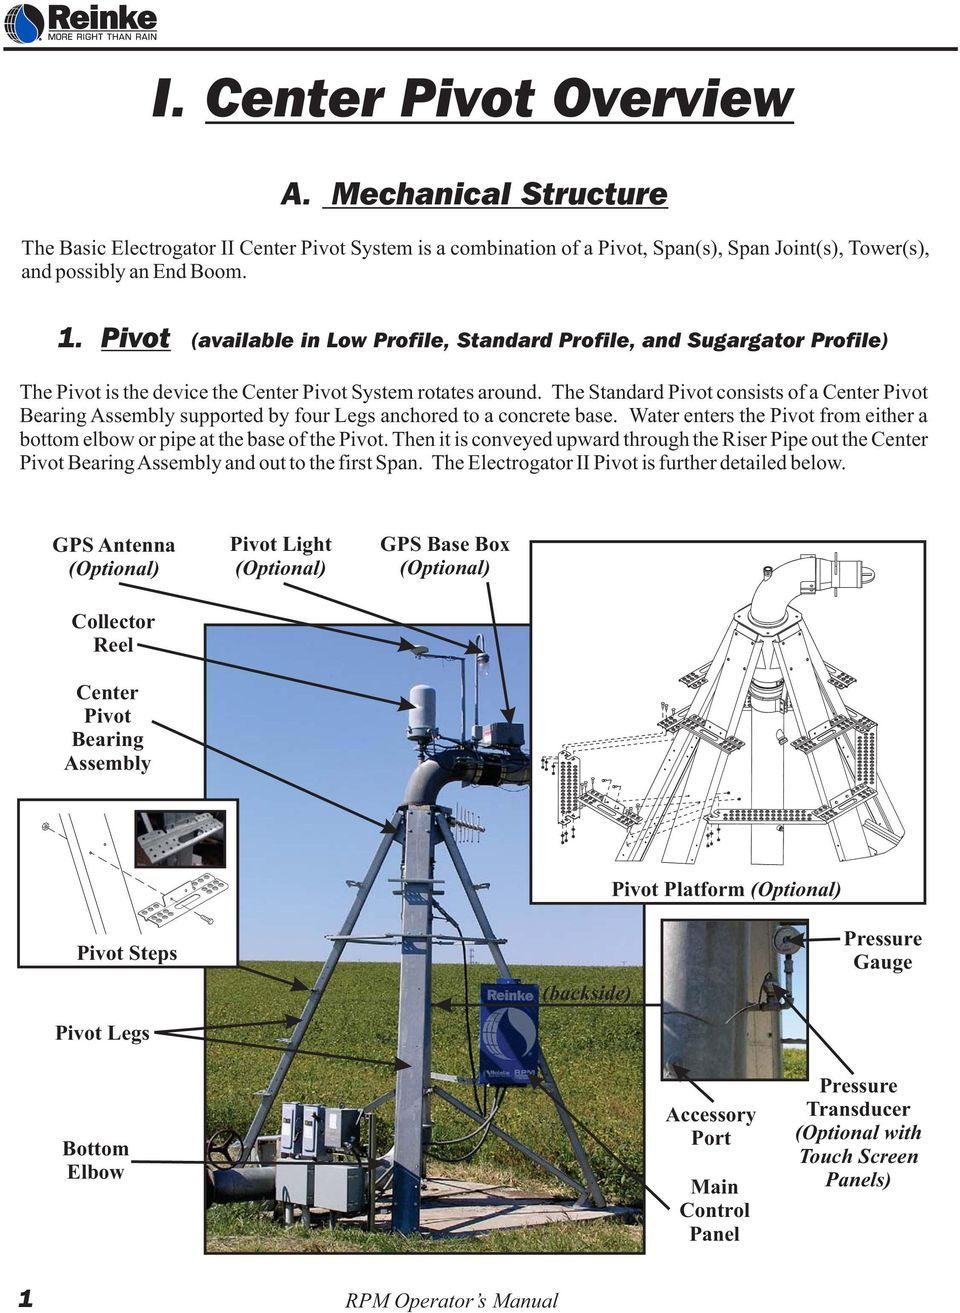 Standard Center Pivot Pdf Irrigation Wiring Diagrams The Consists Of A Bearing Assembly Supported By Four Legs Anchored To